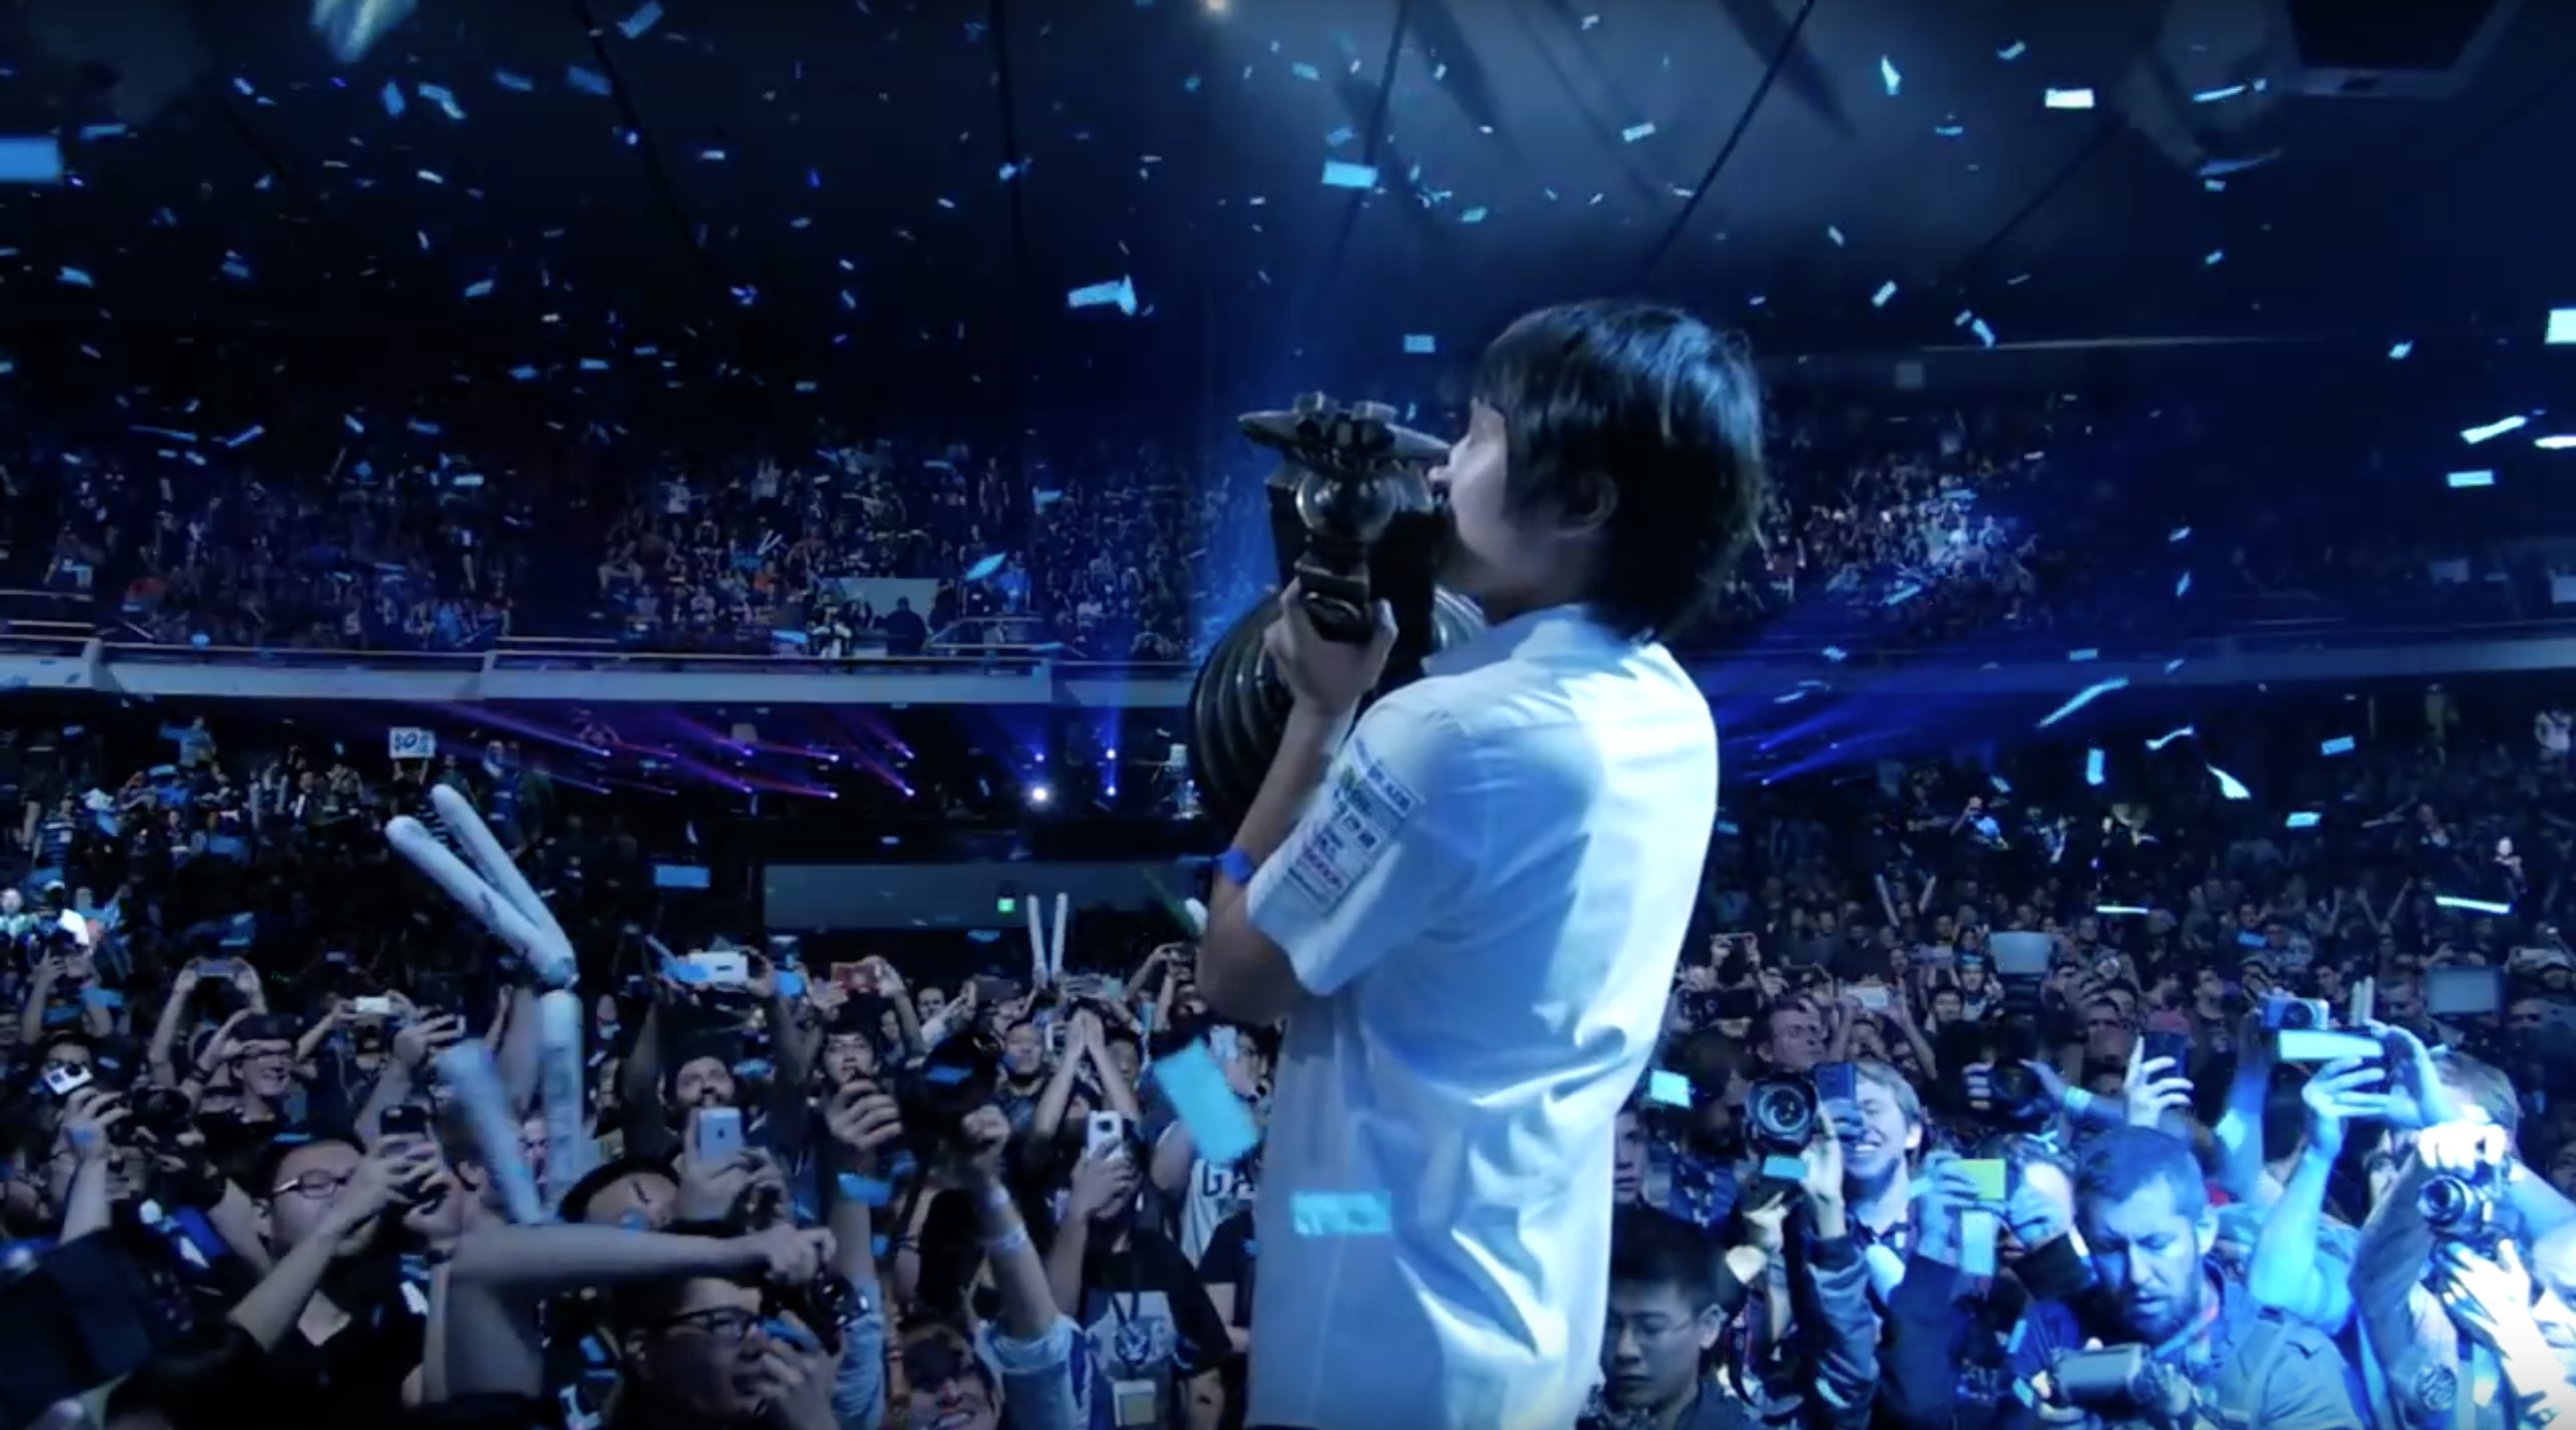 Video: Four major eSports world championships feature at Blizzcon 2015